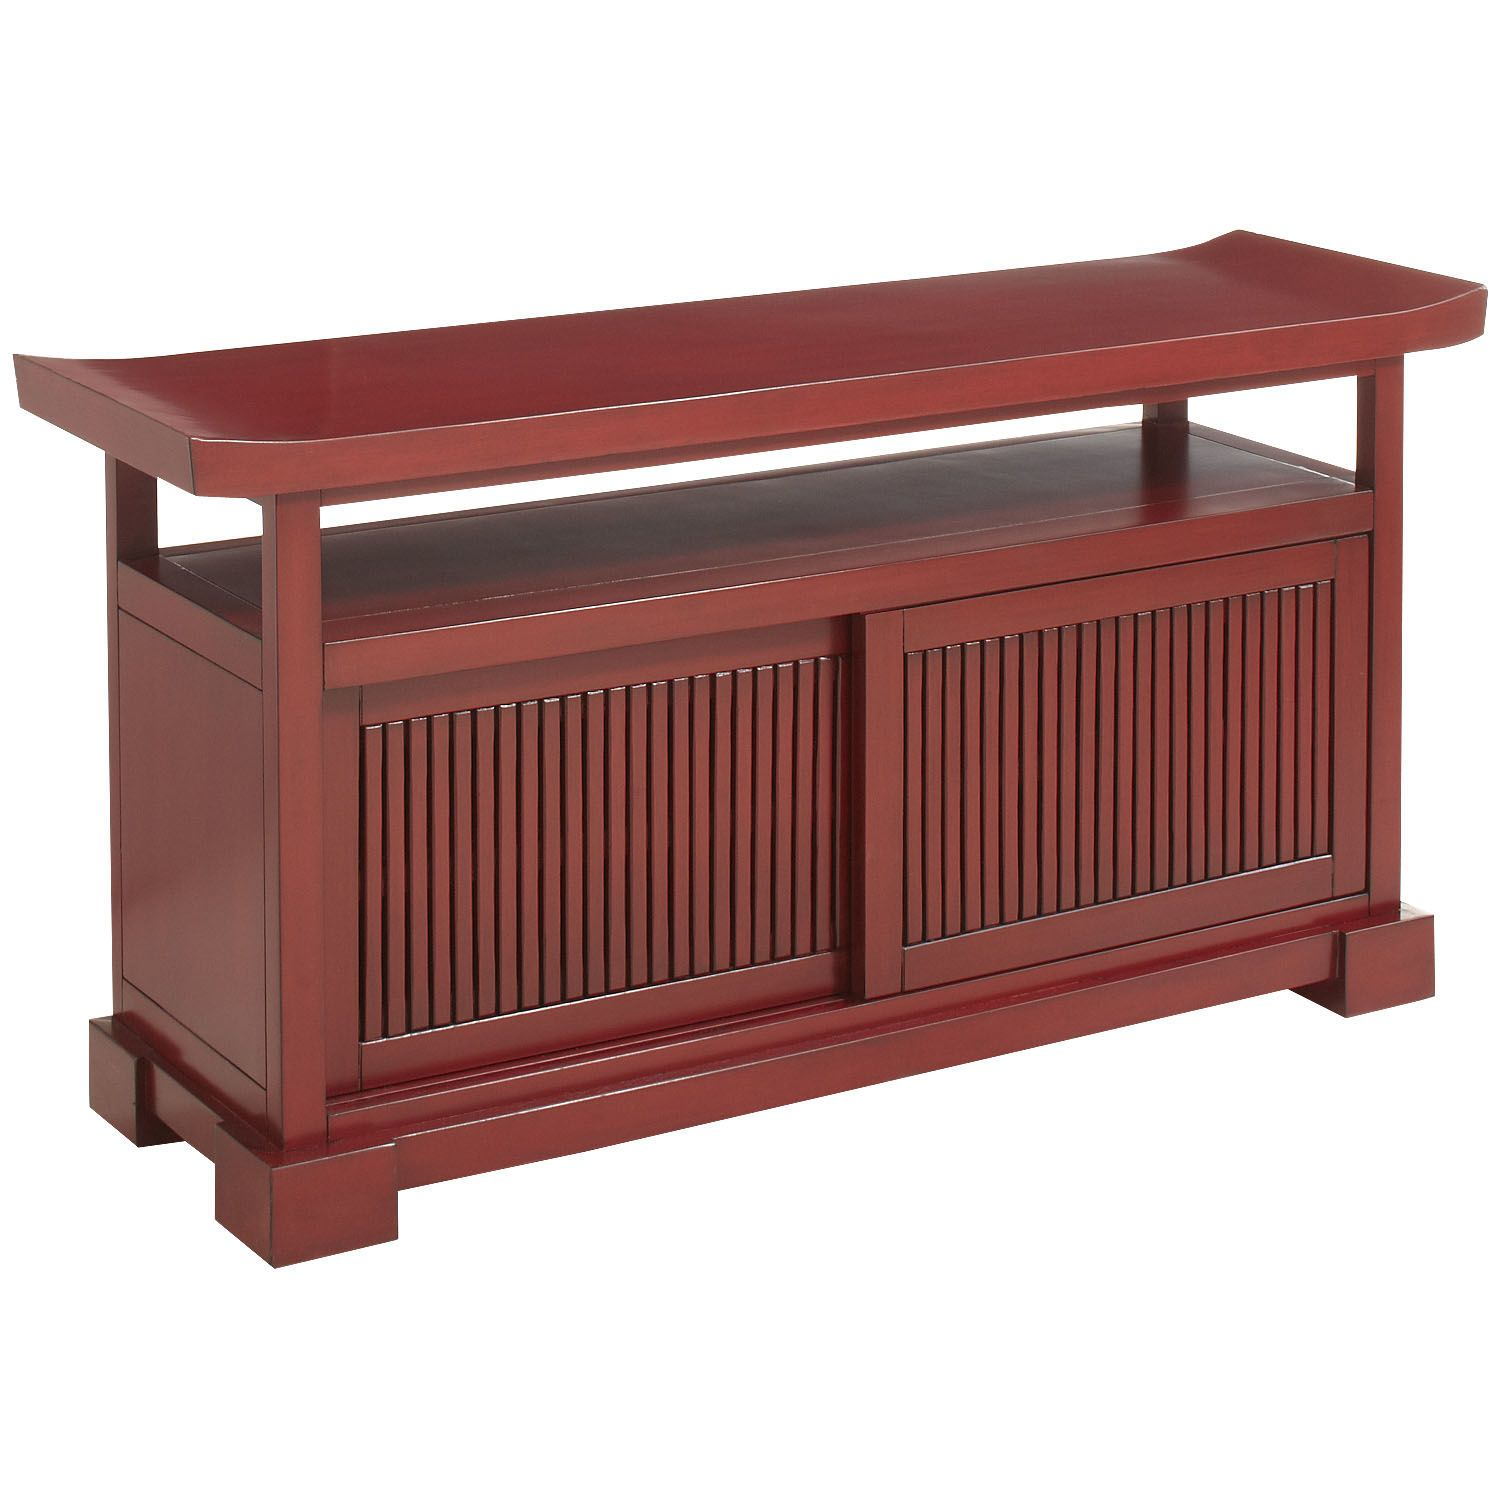 Fung Tv Stand Antique Red Media Stand Asian Decor Living Room